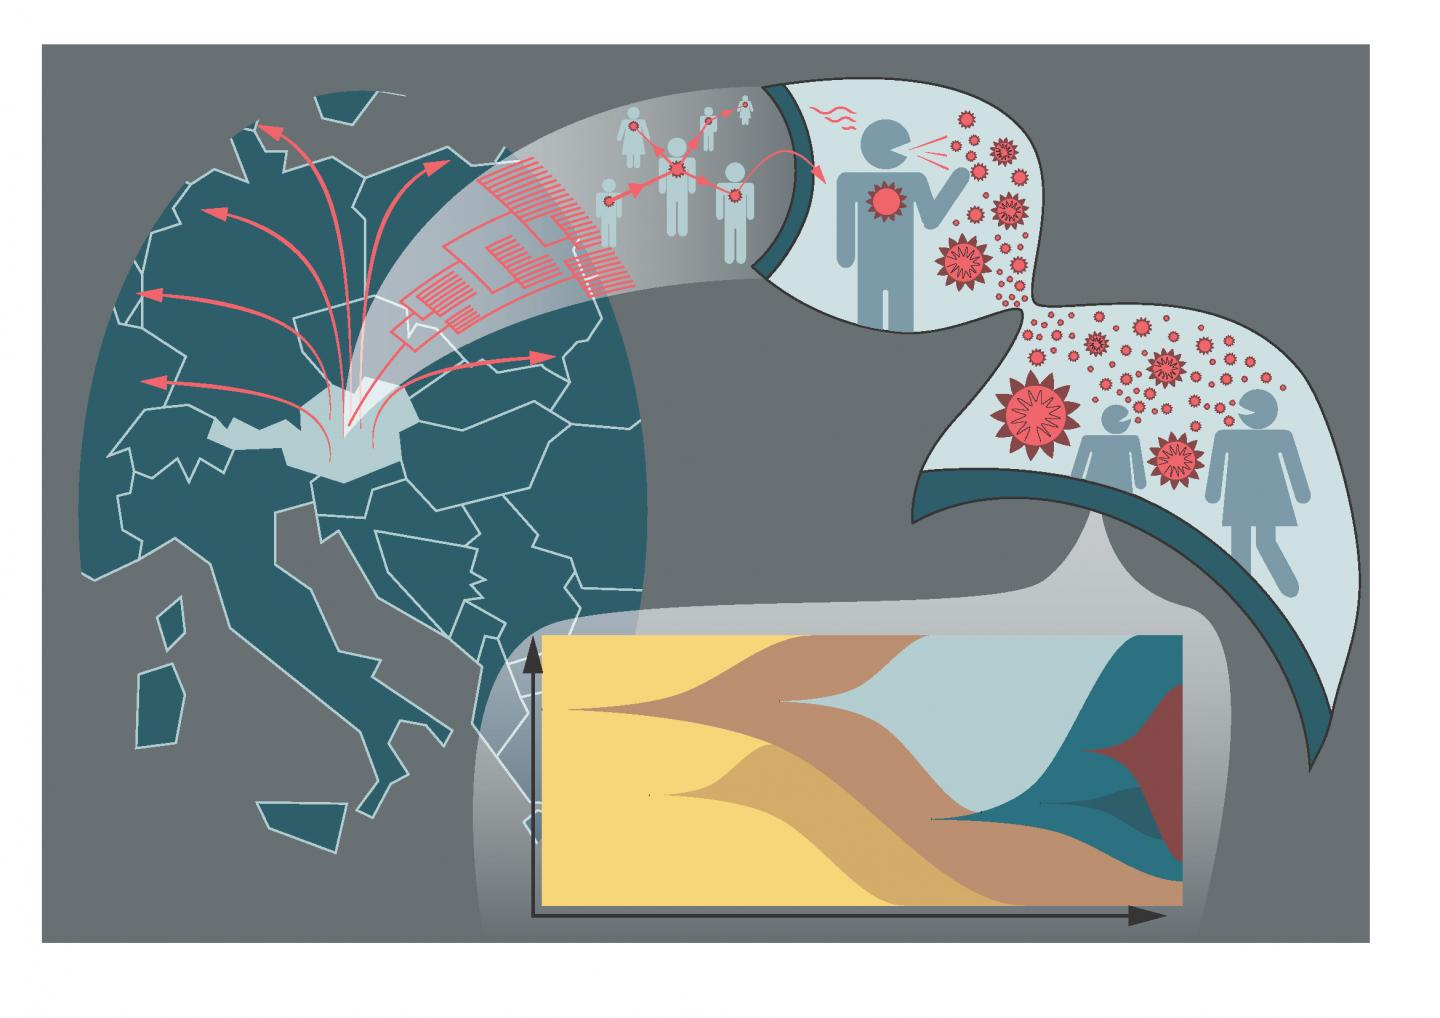 Illustration: Graphical abstract